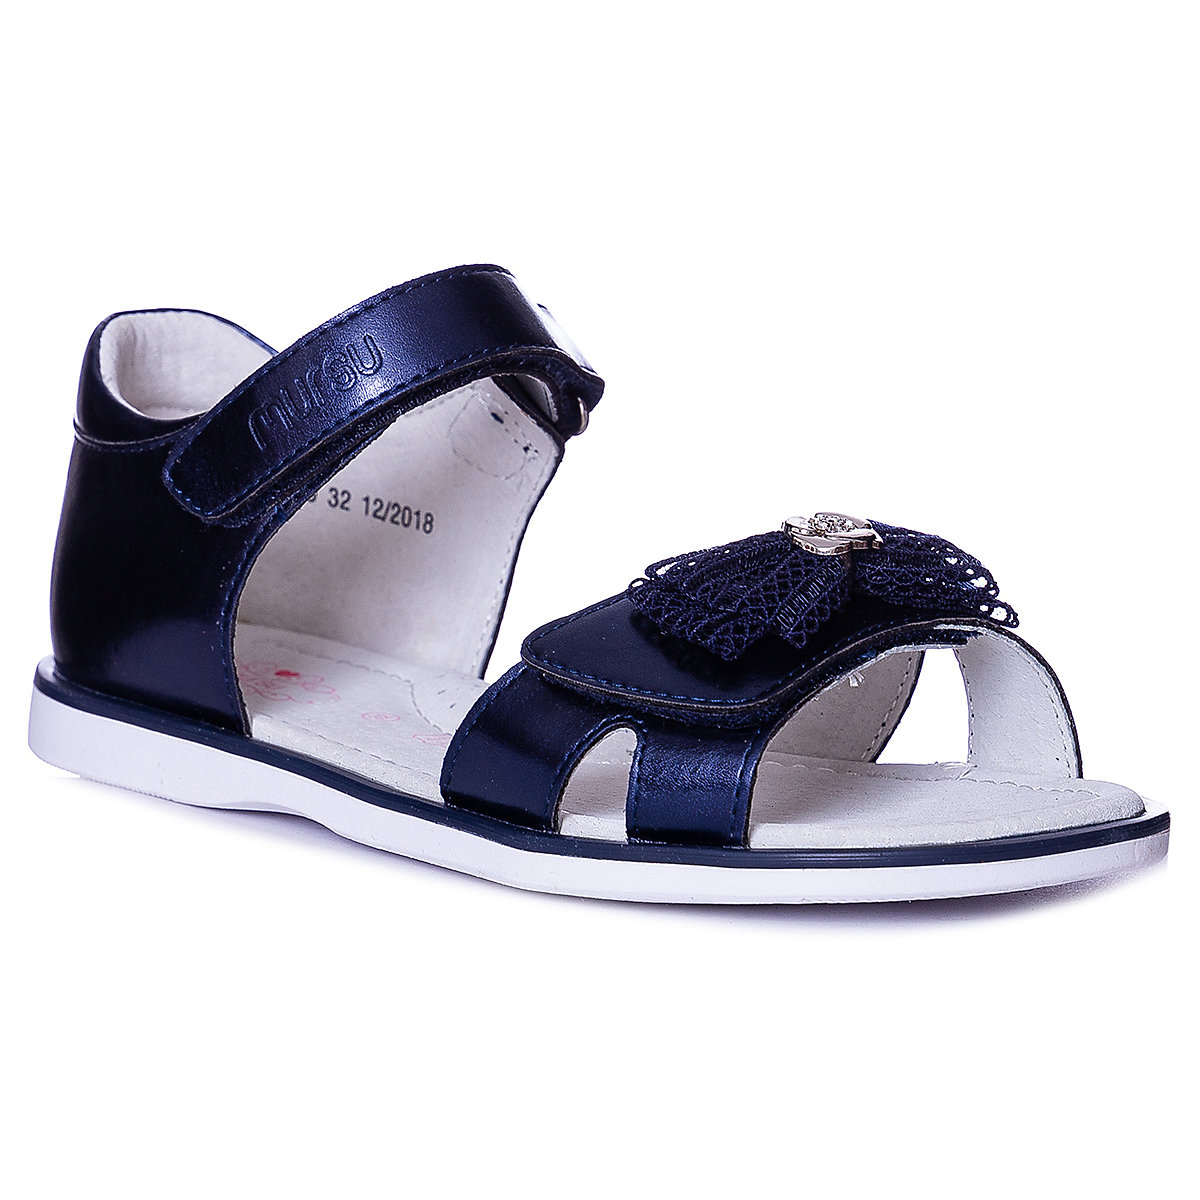 MURSU Sandals 10612143 children's shoes comfortable and light girls and boys sandals adidas af3921 sports and entertainment for boys